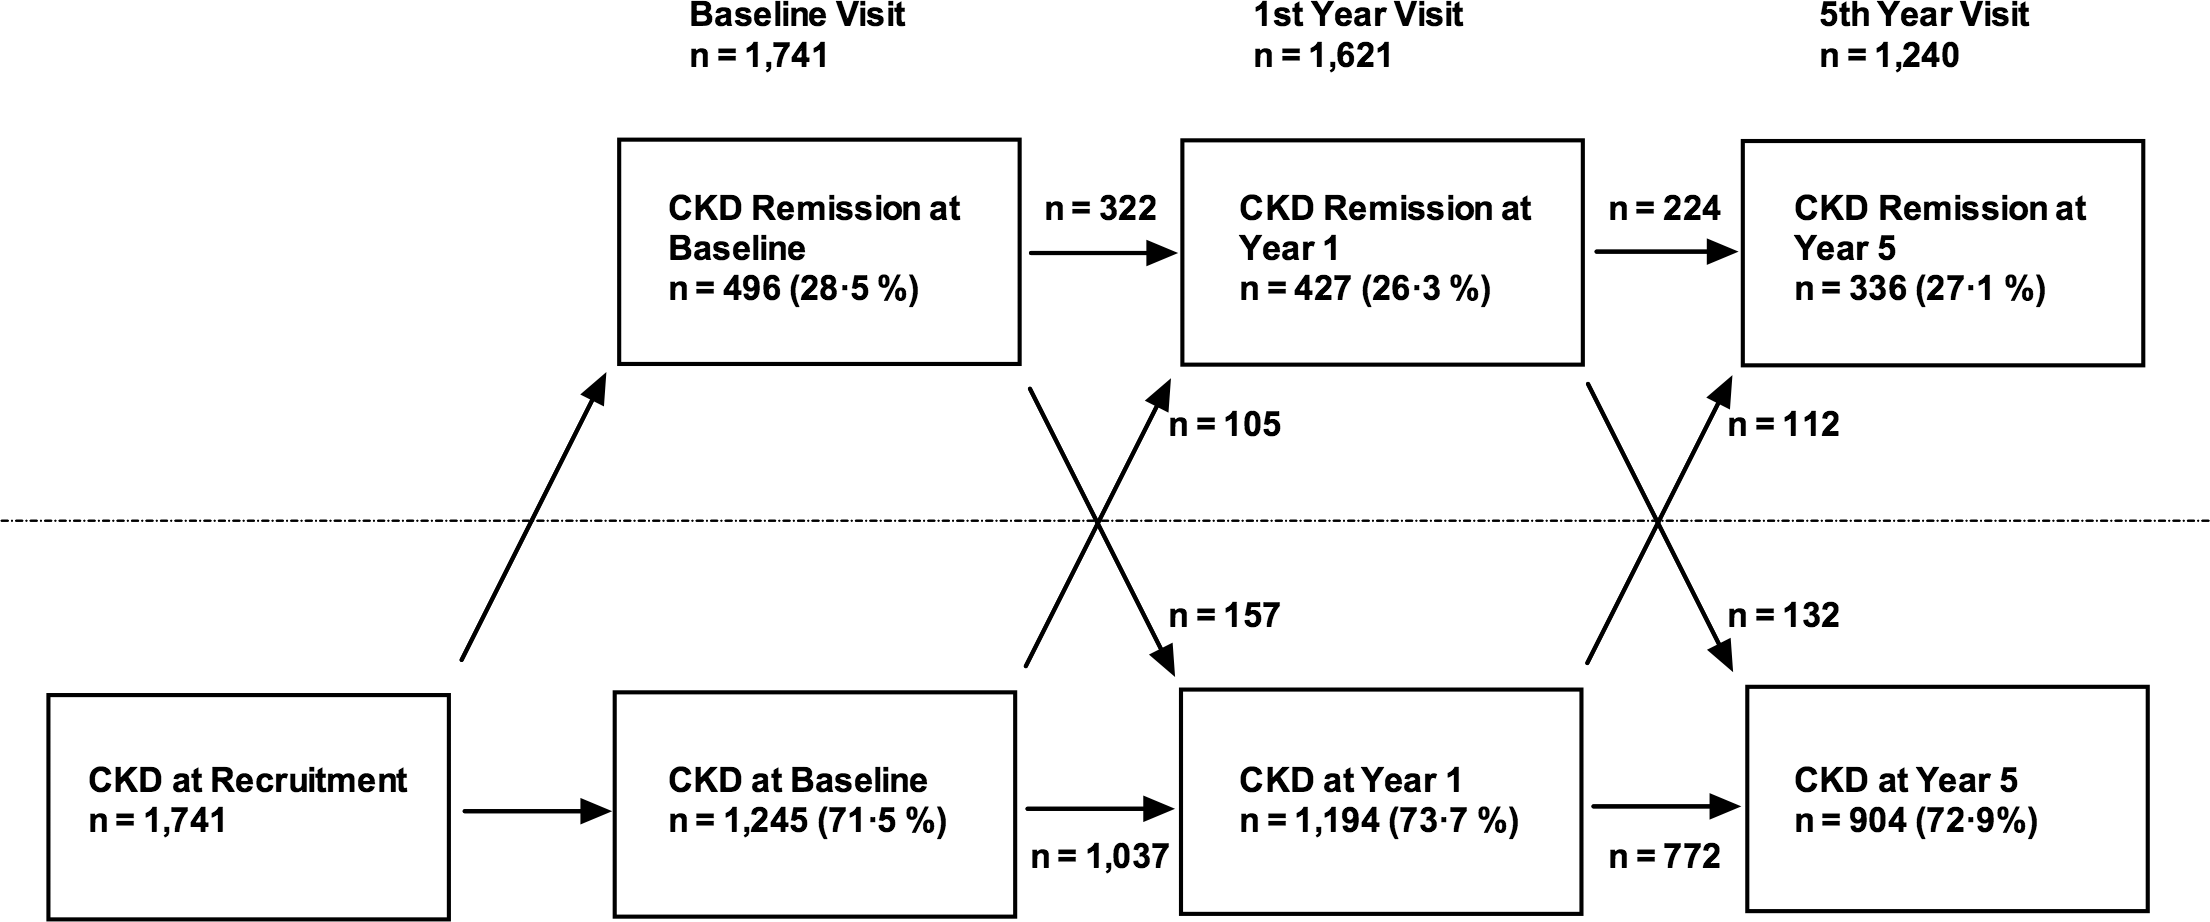 Flowchart showing numbers of participants demonstrating CKD and CKD remission at each study visit.